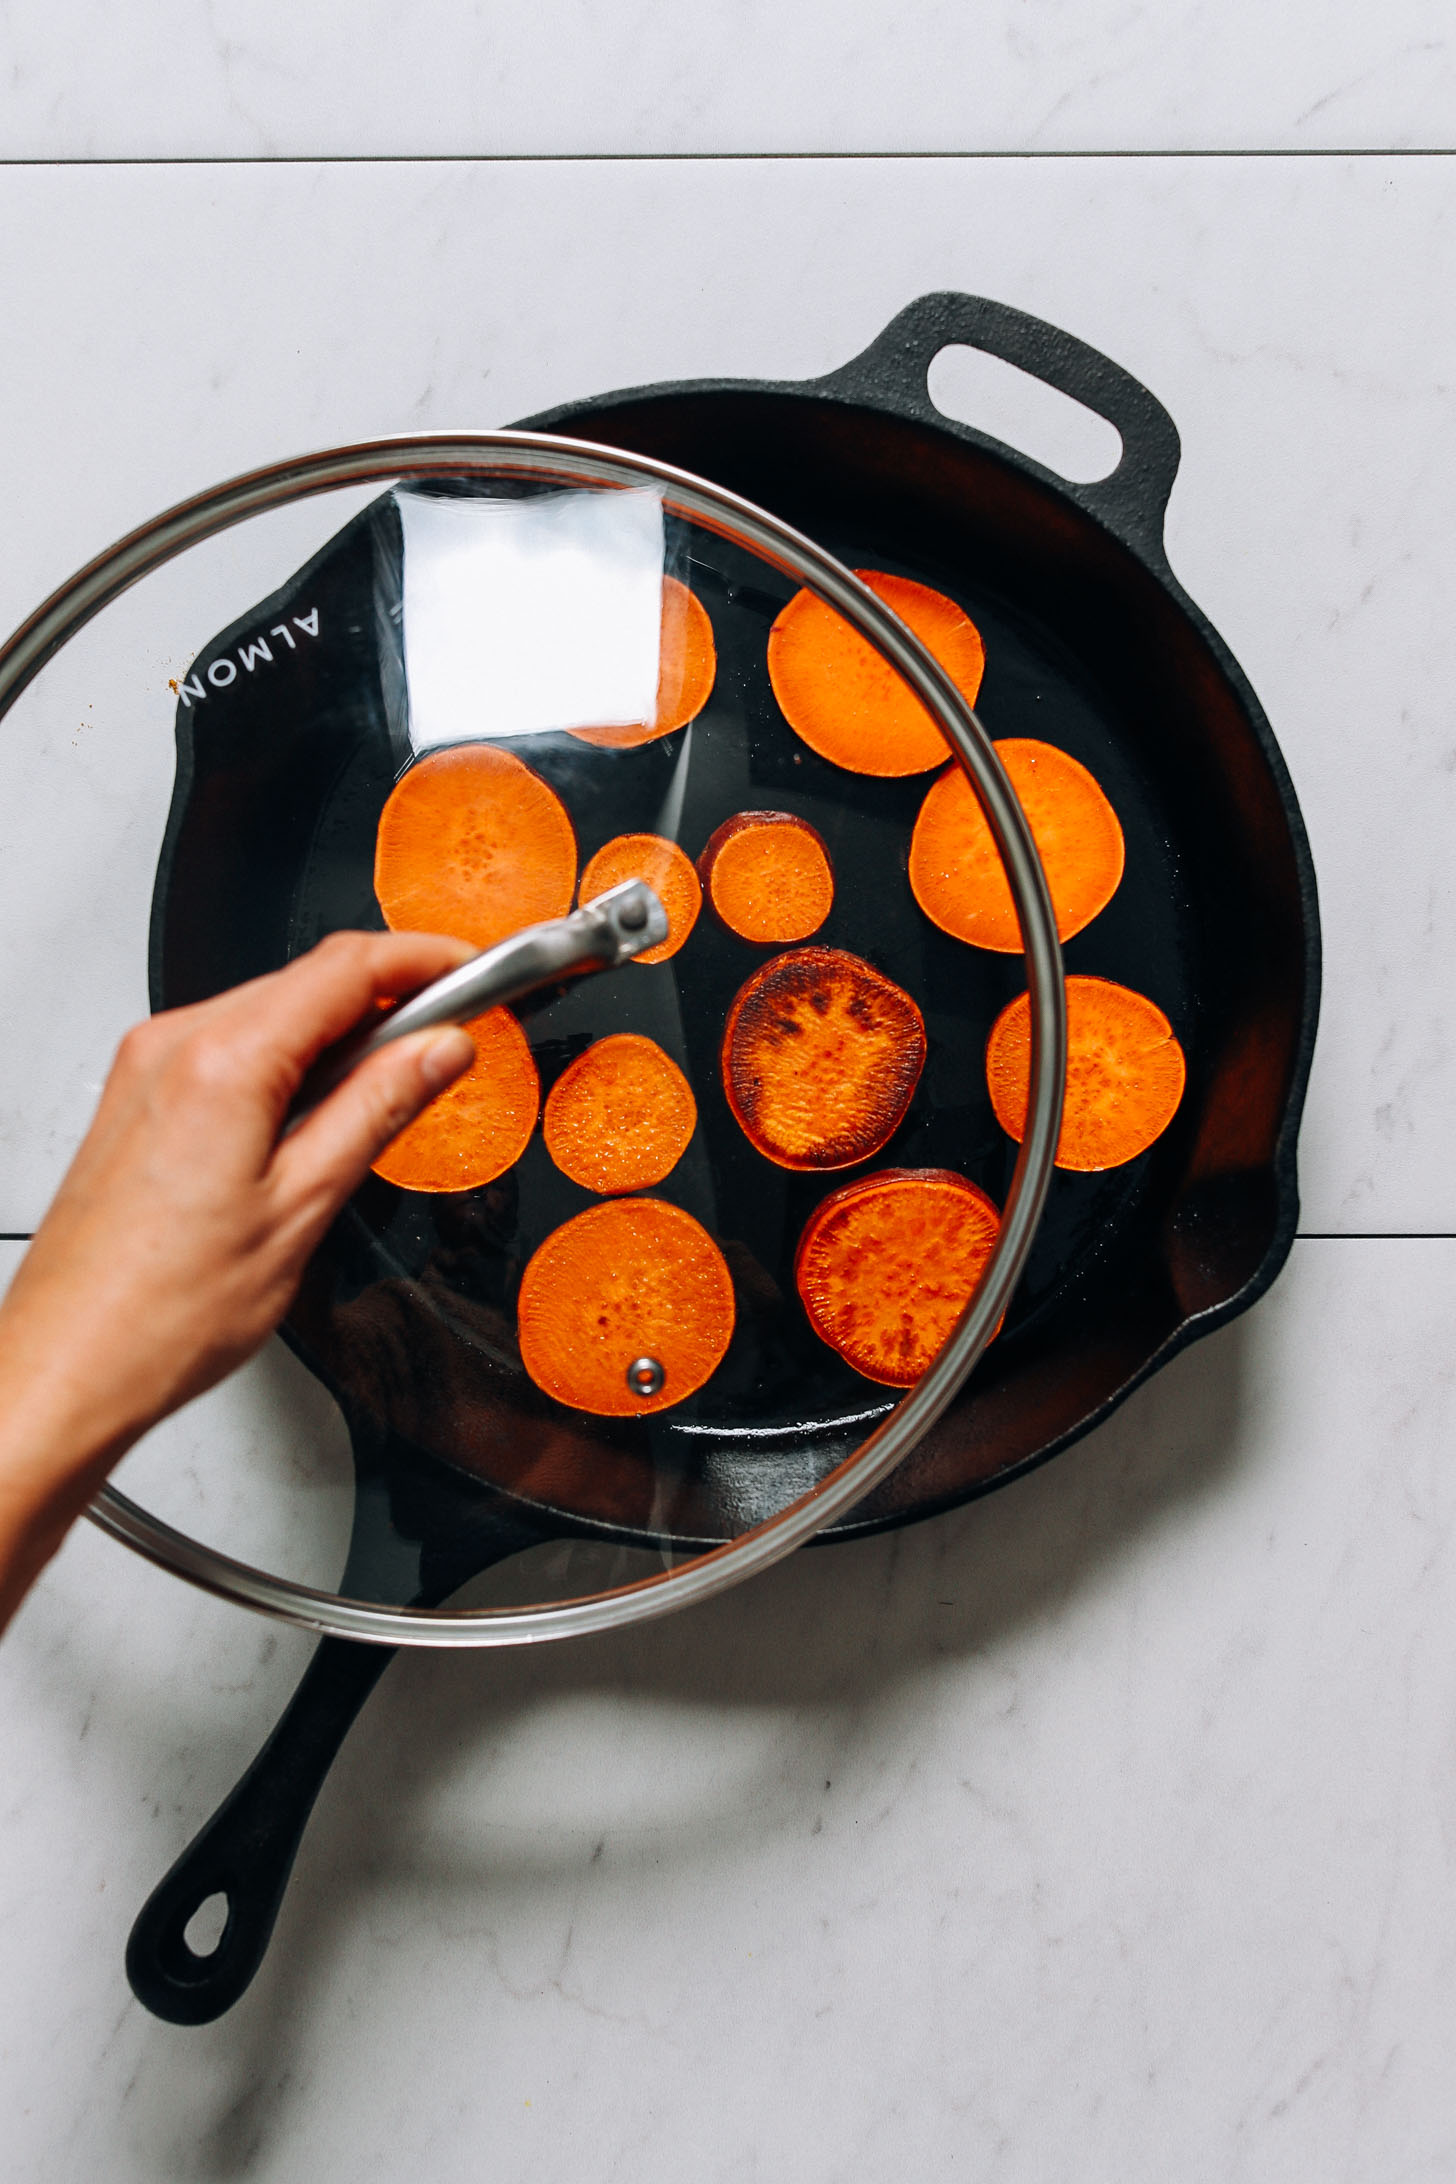 Covering a pan of sweet potatoes to help them cook through fully